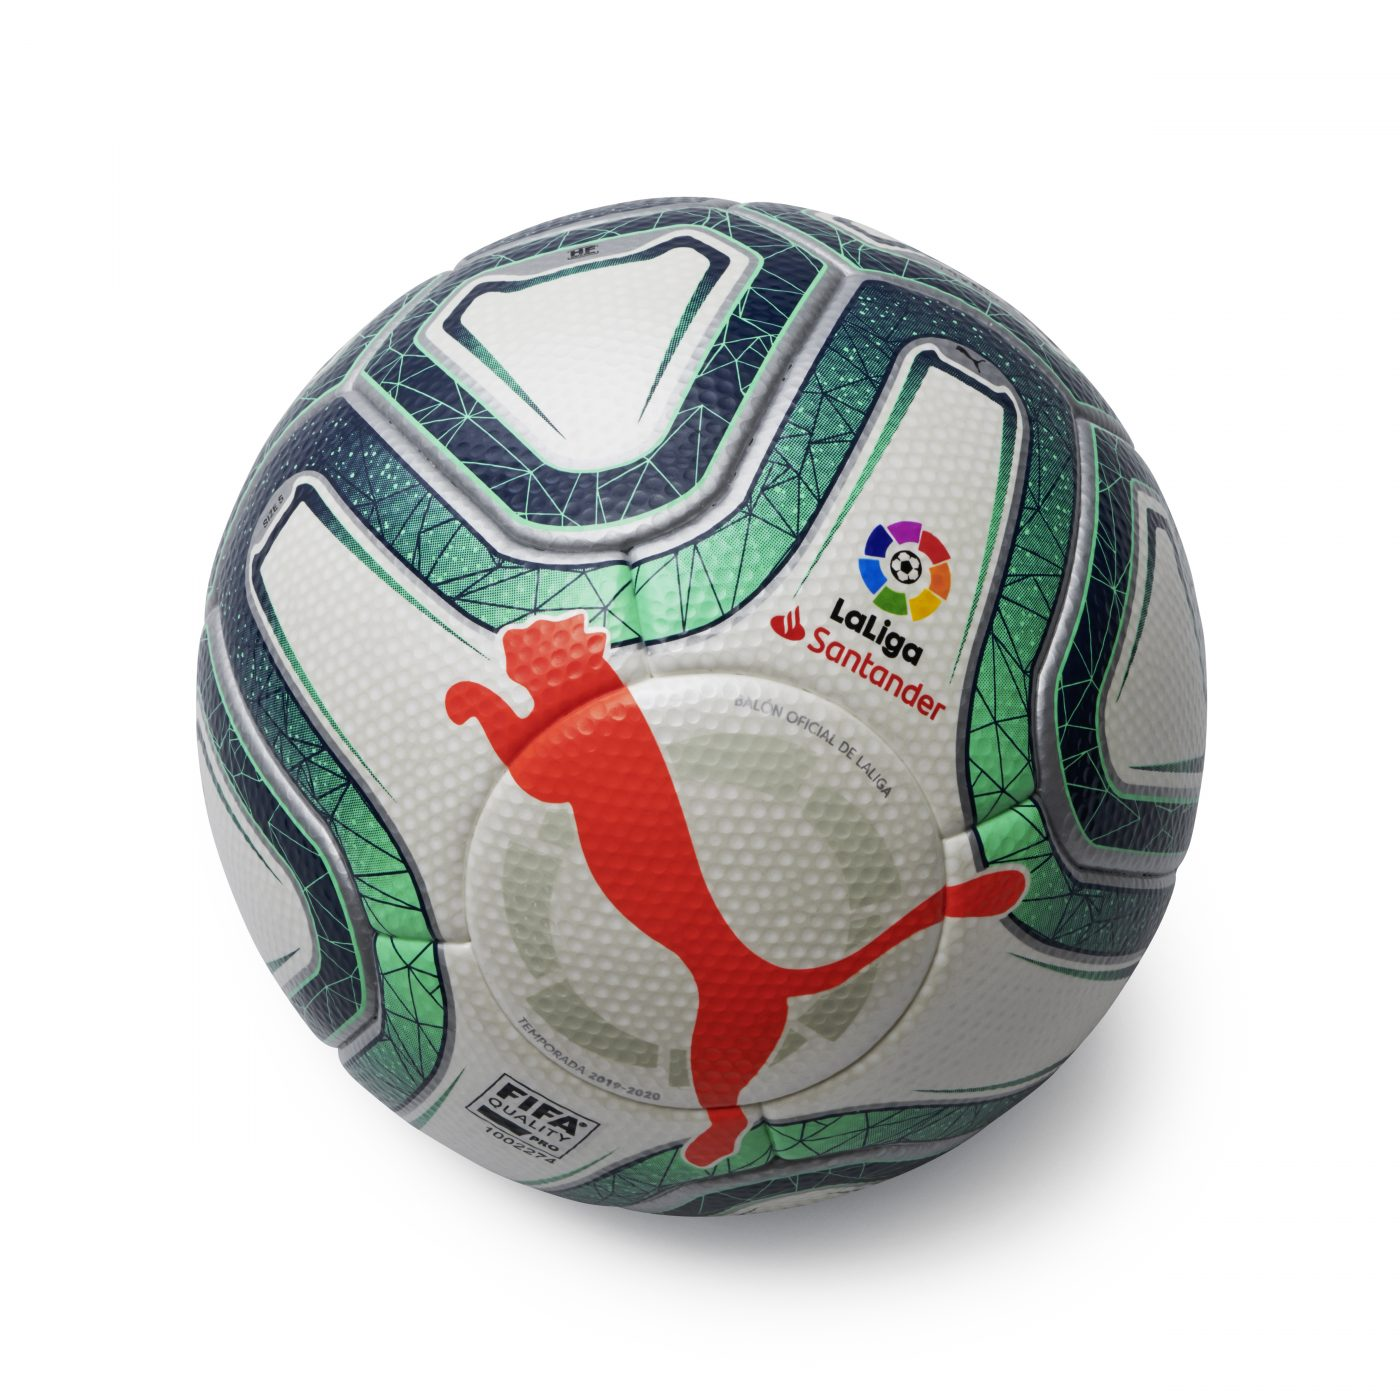 ballon-officiel-la-liga-2019-2020-puma-1